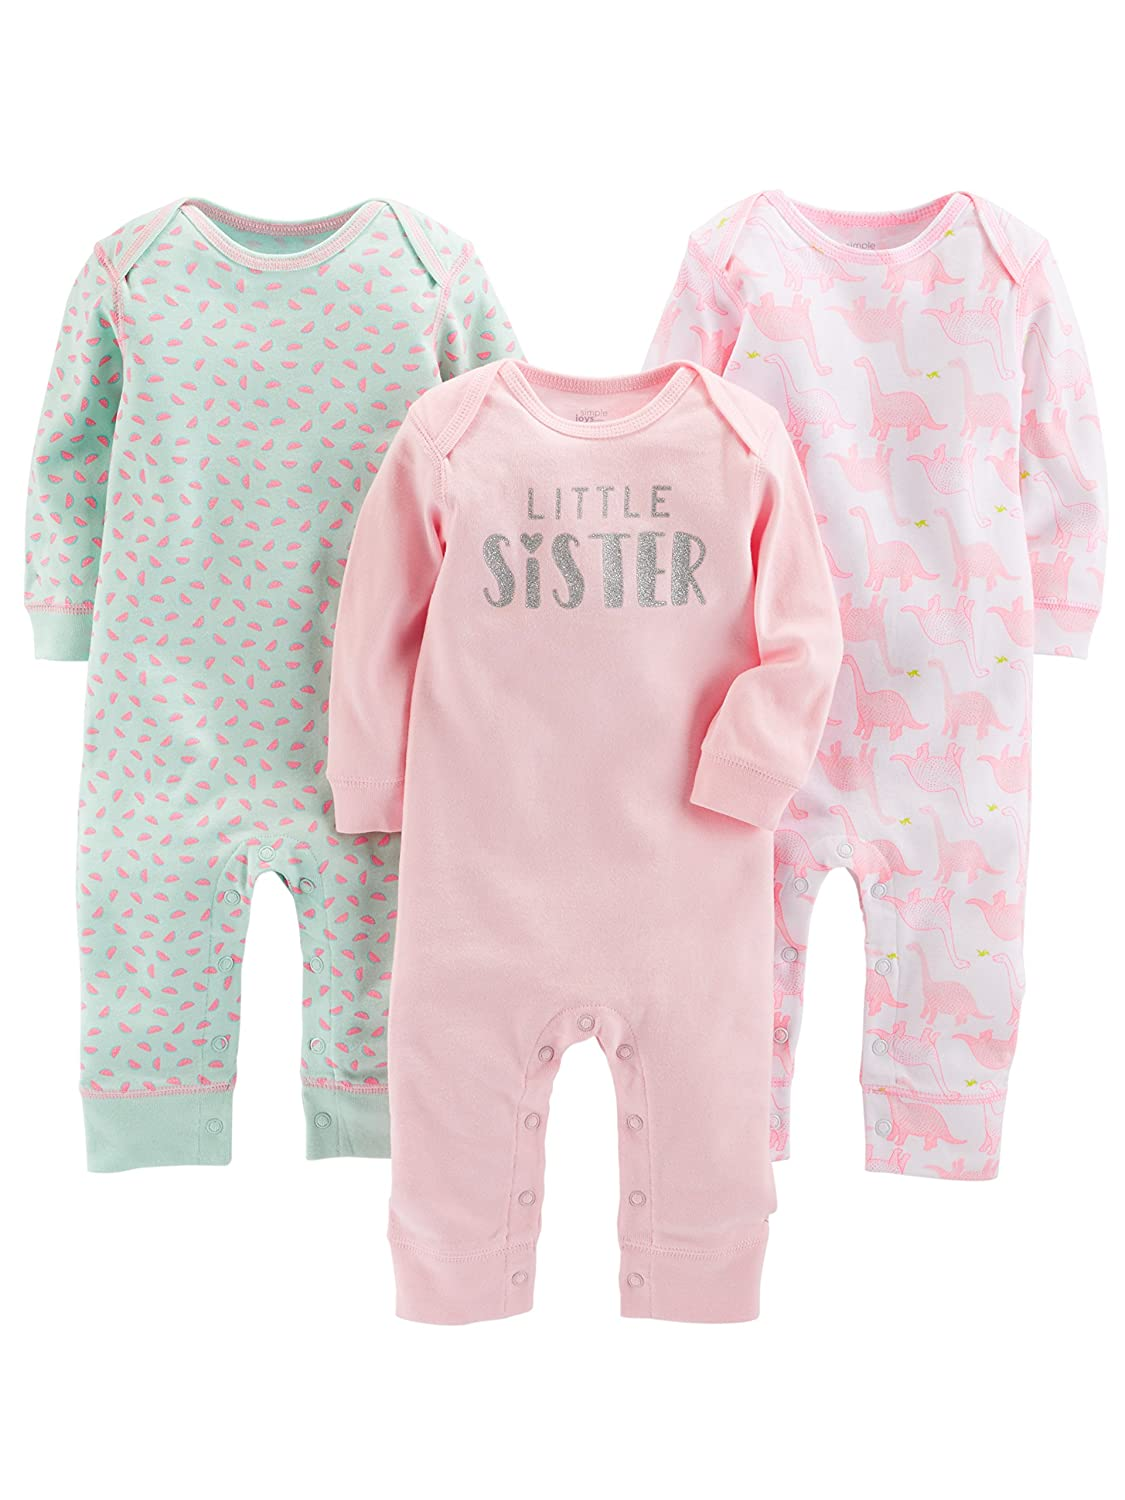 Simple Joys by Carters Baby Girls 3-Pack Jumpsuits